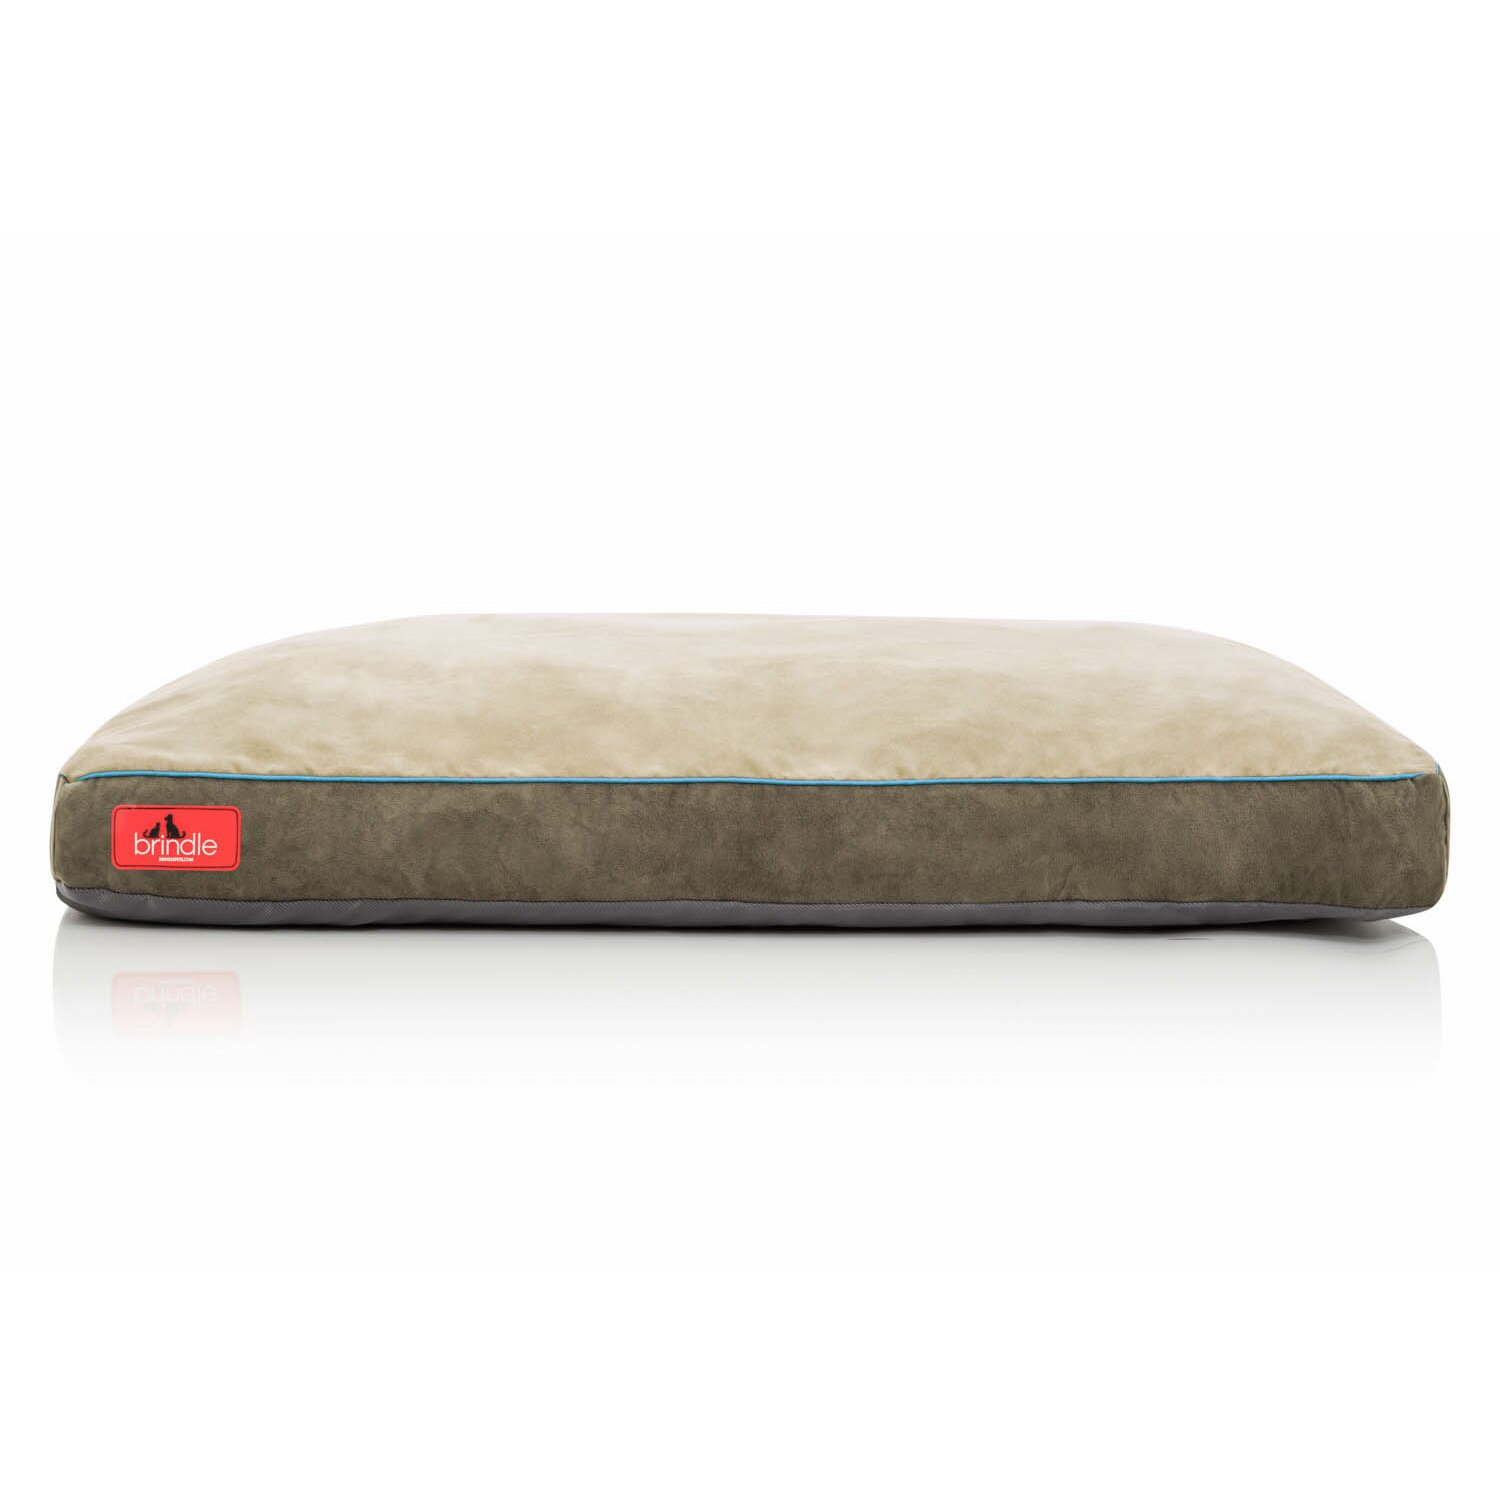 Brindle Shredded Memory Foam Dog Bed